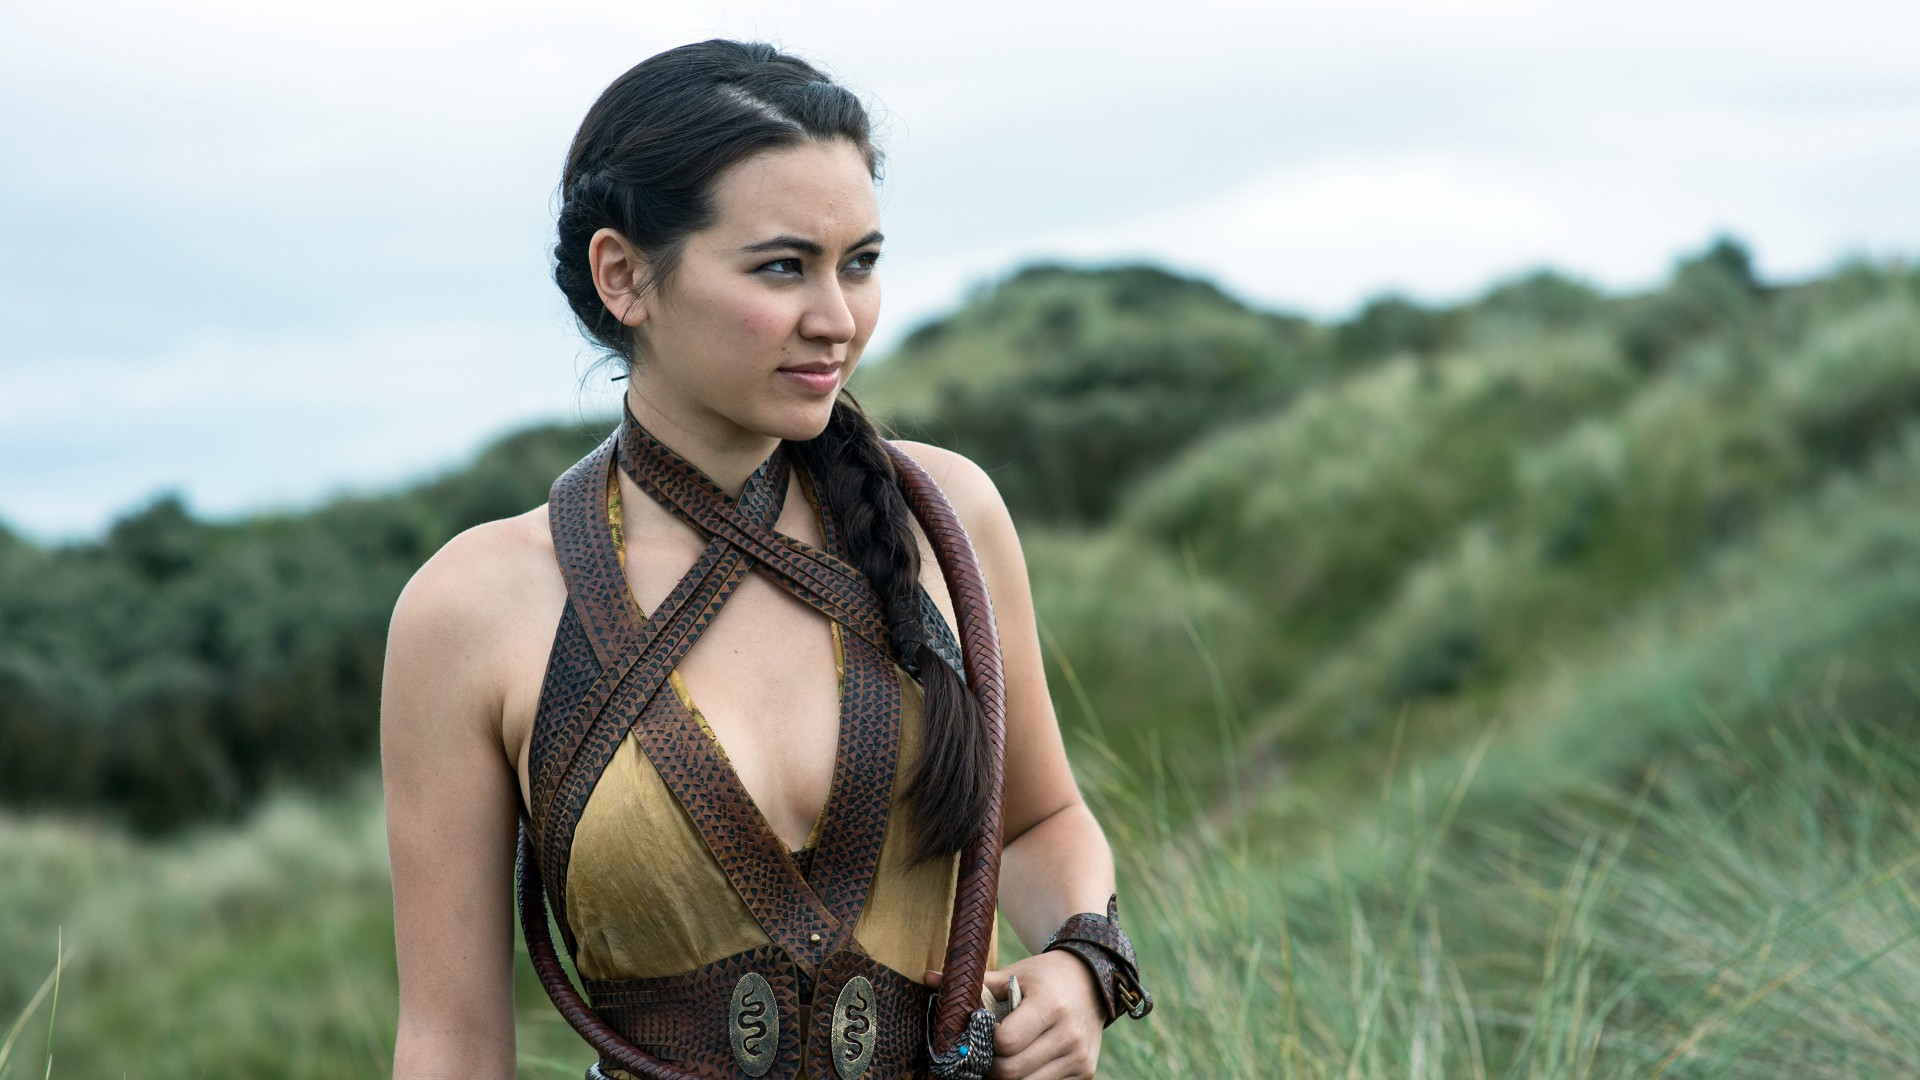 3d Wallpaper Of Cars And Bikes Jessica Henwick Nymeria Sand Game Of Thrones Wallpapers